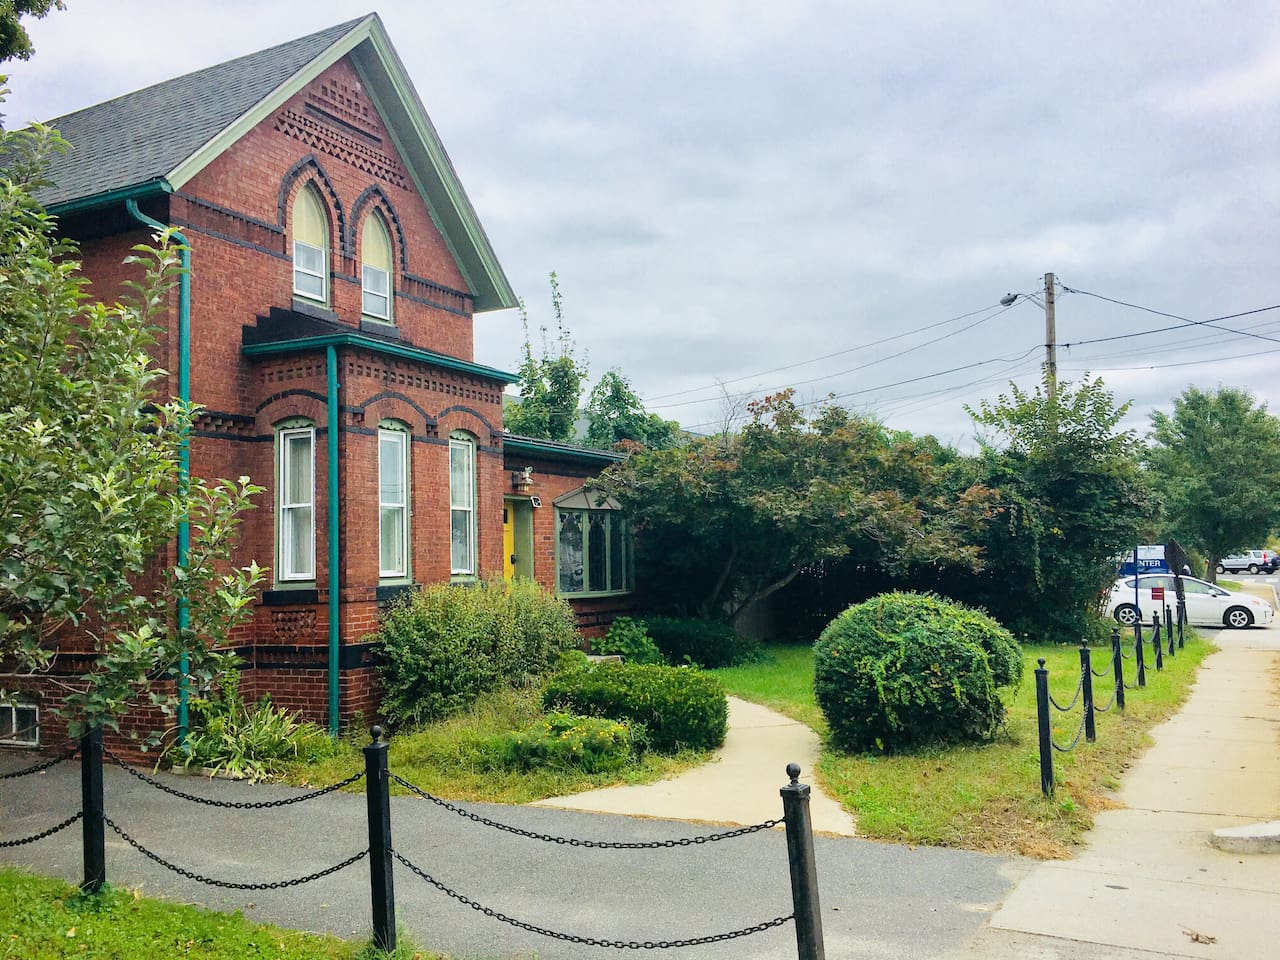 1900 home with easy (200') access off King Street but still quieter than Hotel Northampton:)